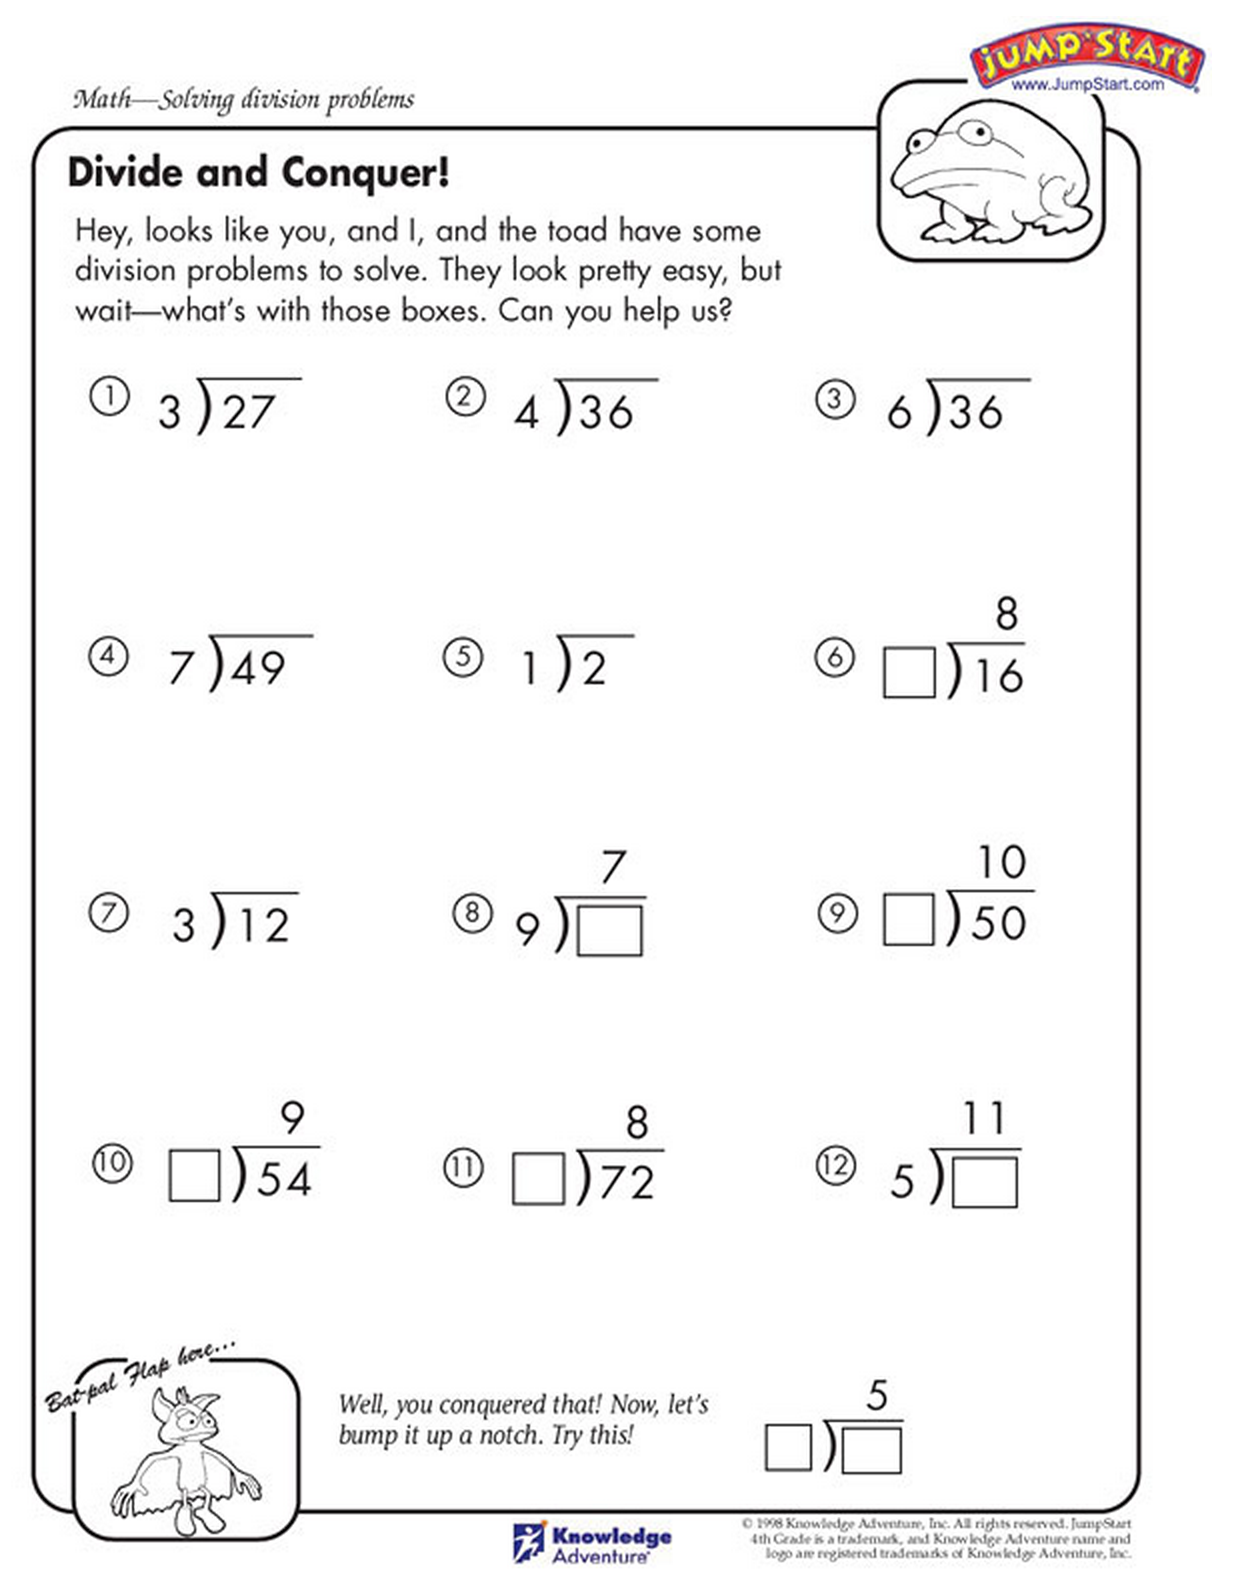 help mister toad solve these division problems printable math sheets 4th grade math. Black Bedroom Furniture Sets. Home Design Ideas